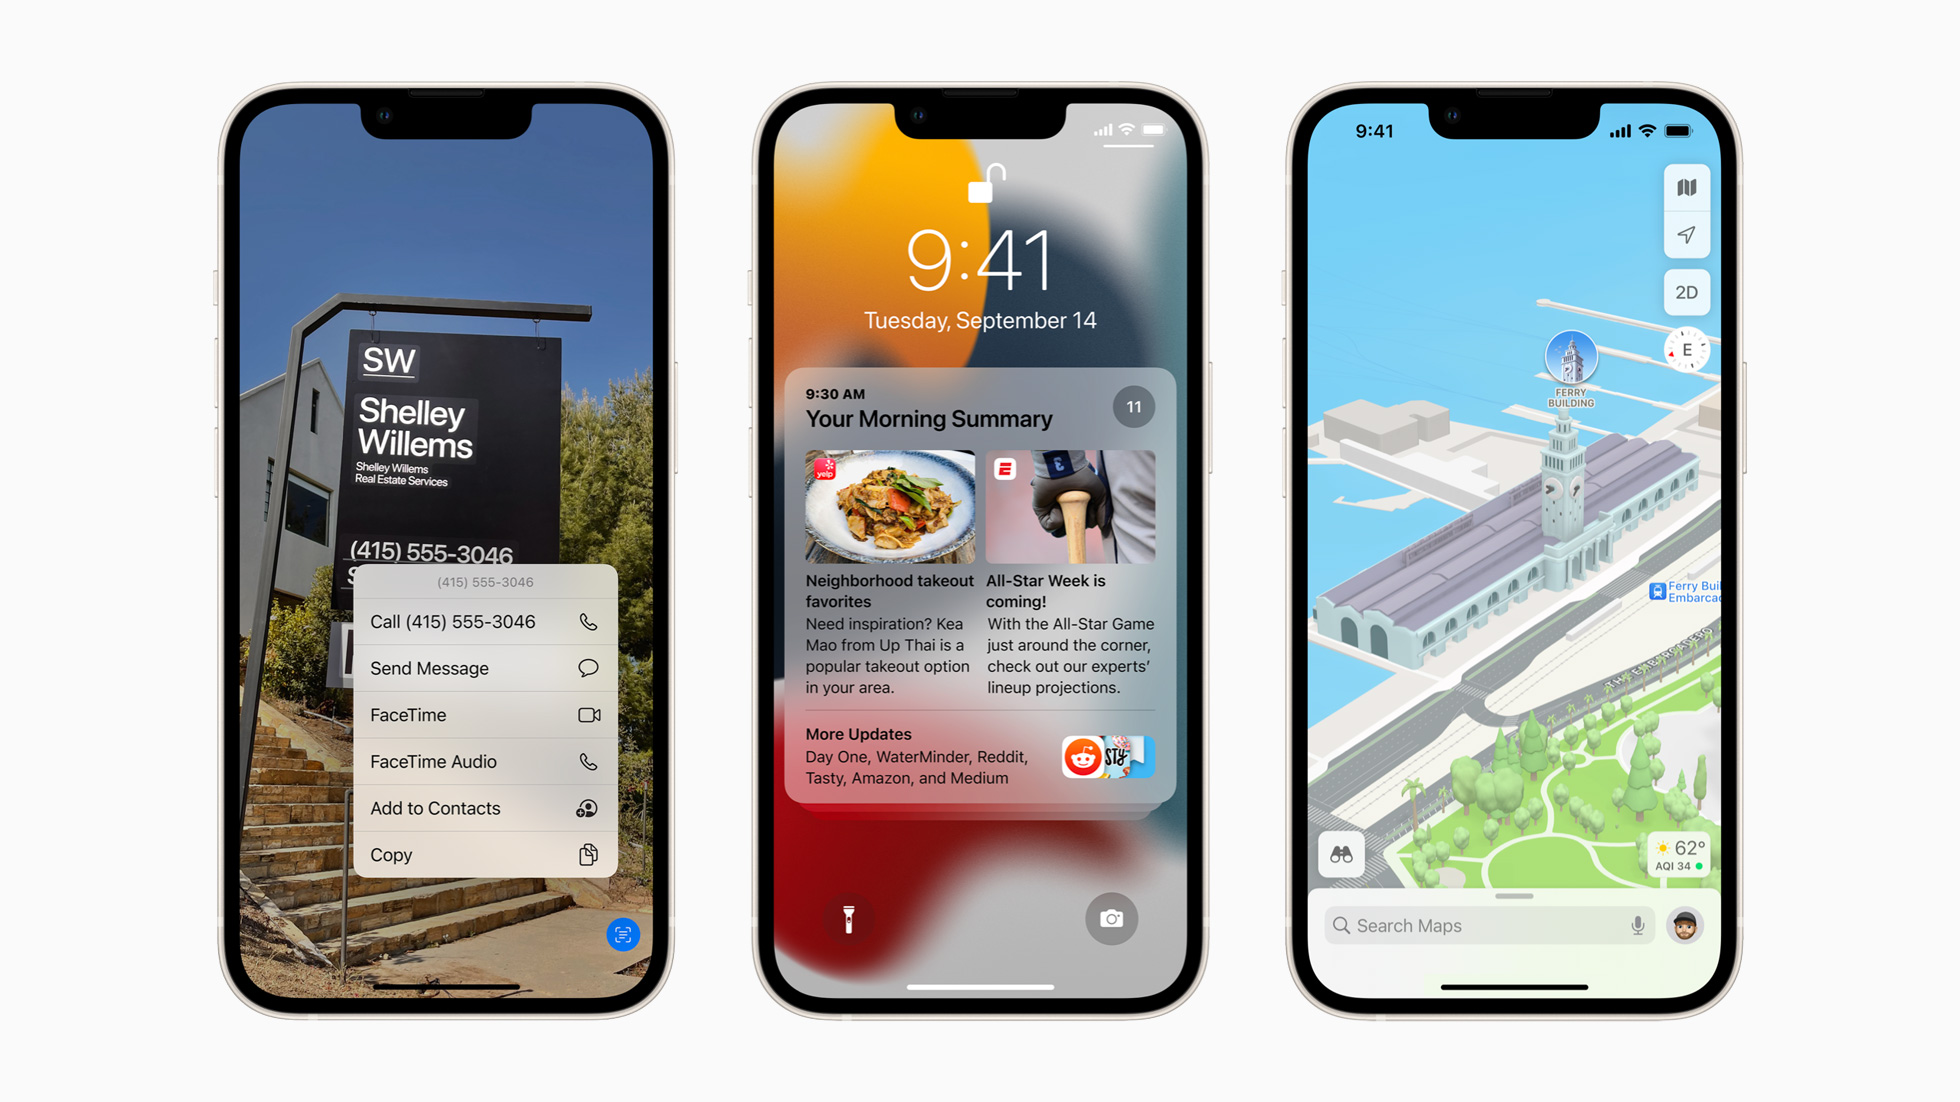 iOS 15 adds all the little features that were missing...